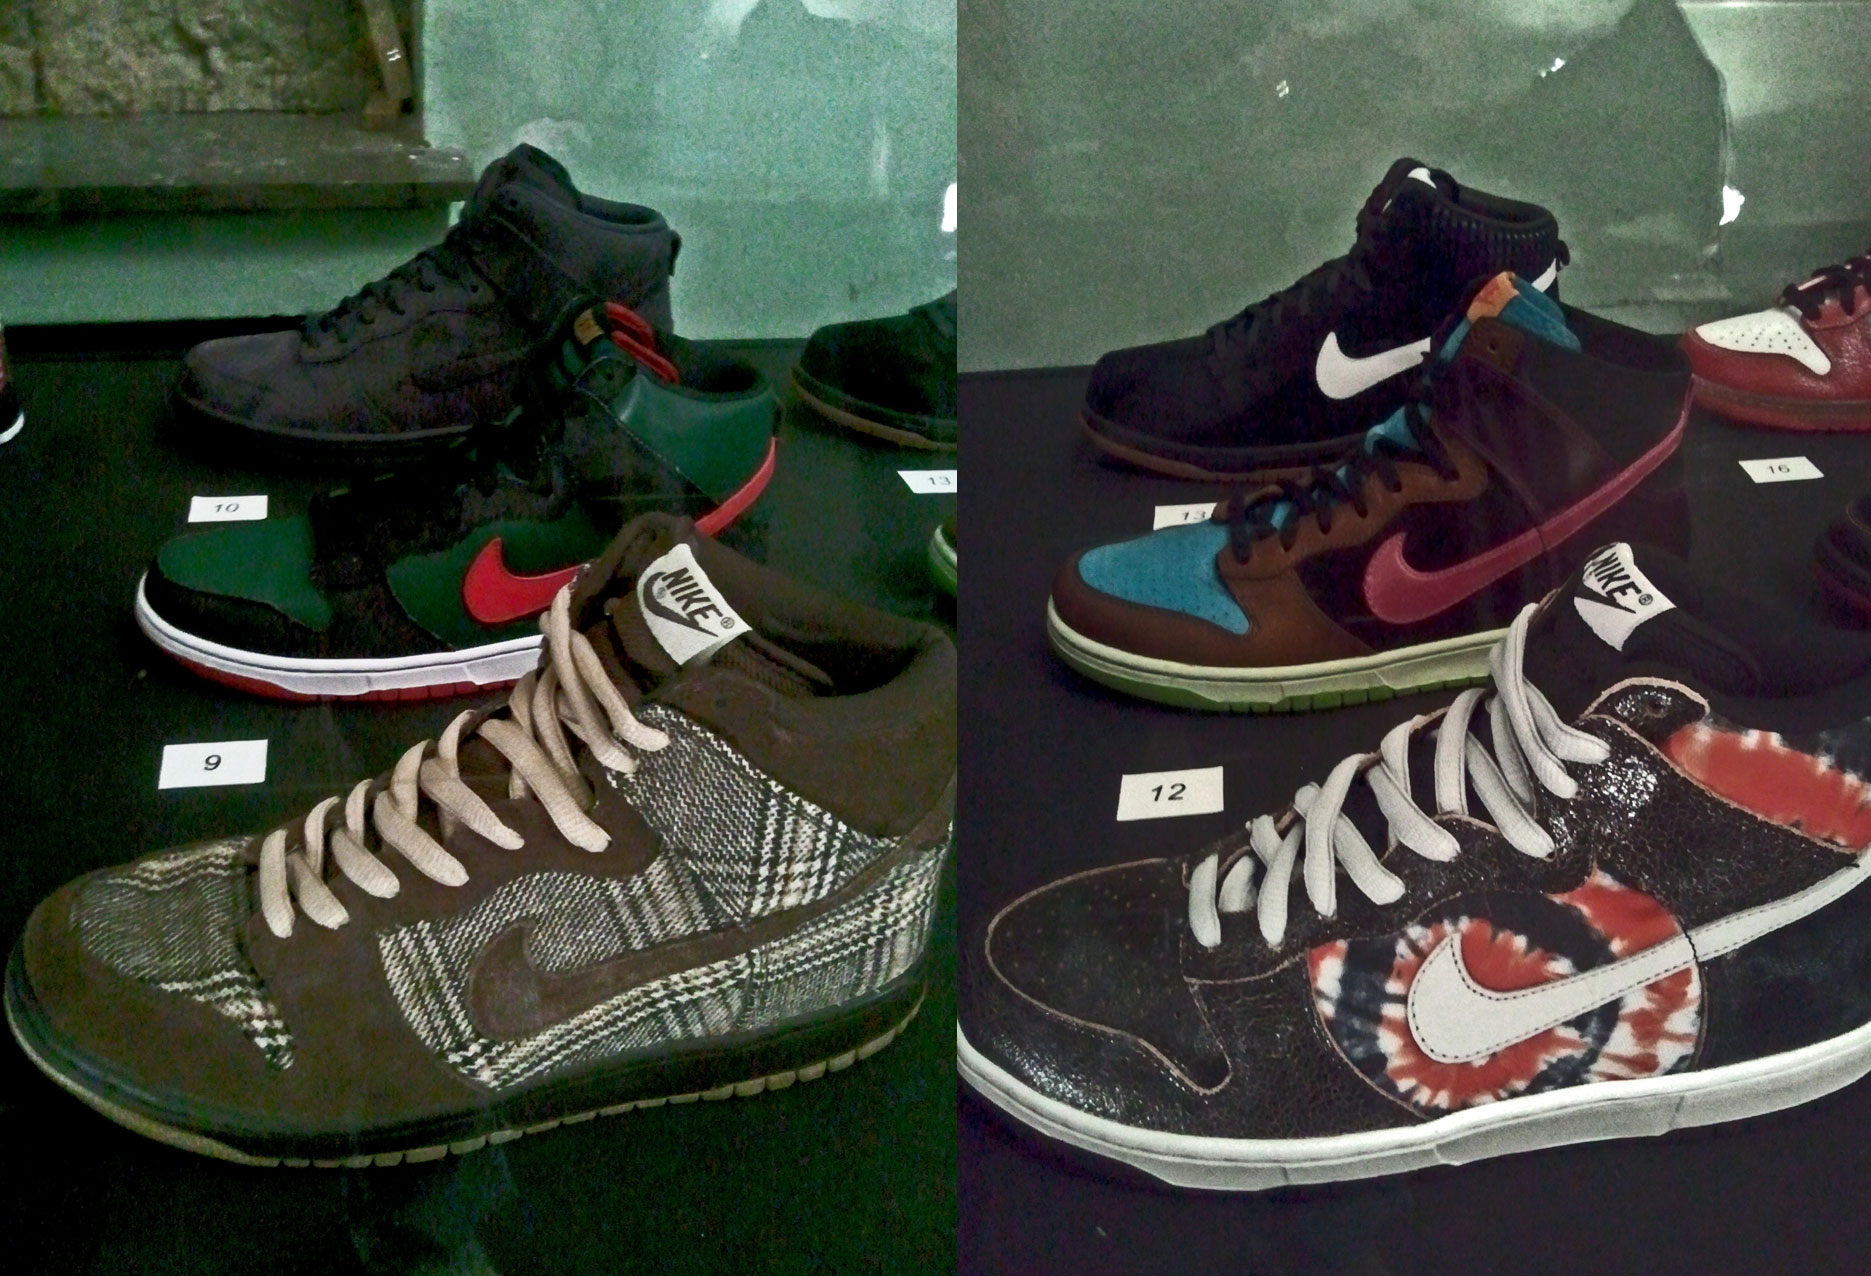 Dunk High Pro SB Tweed, Dunk High Pro SB Gucci, Dunk High DQM, Dunk High Pro SB HUF, Dunk High NL UNDFTD, Dunk High Alife Rivington Club